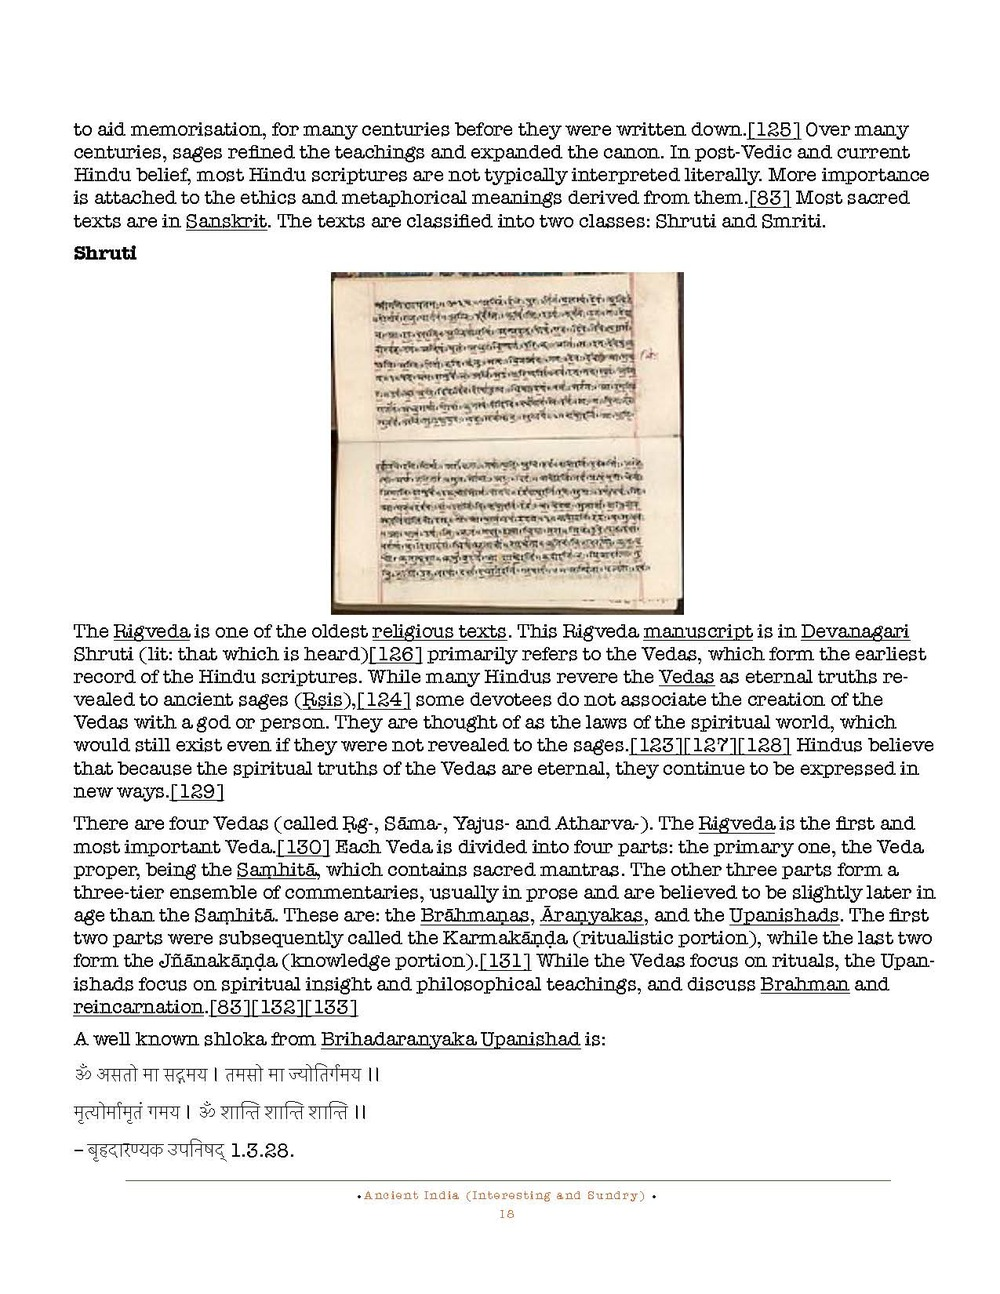 HOCE- Ancient India Notes (Other Interesting and Sundry)_Page_018.jpg